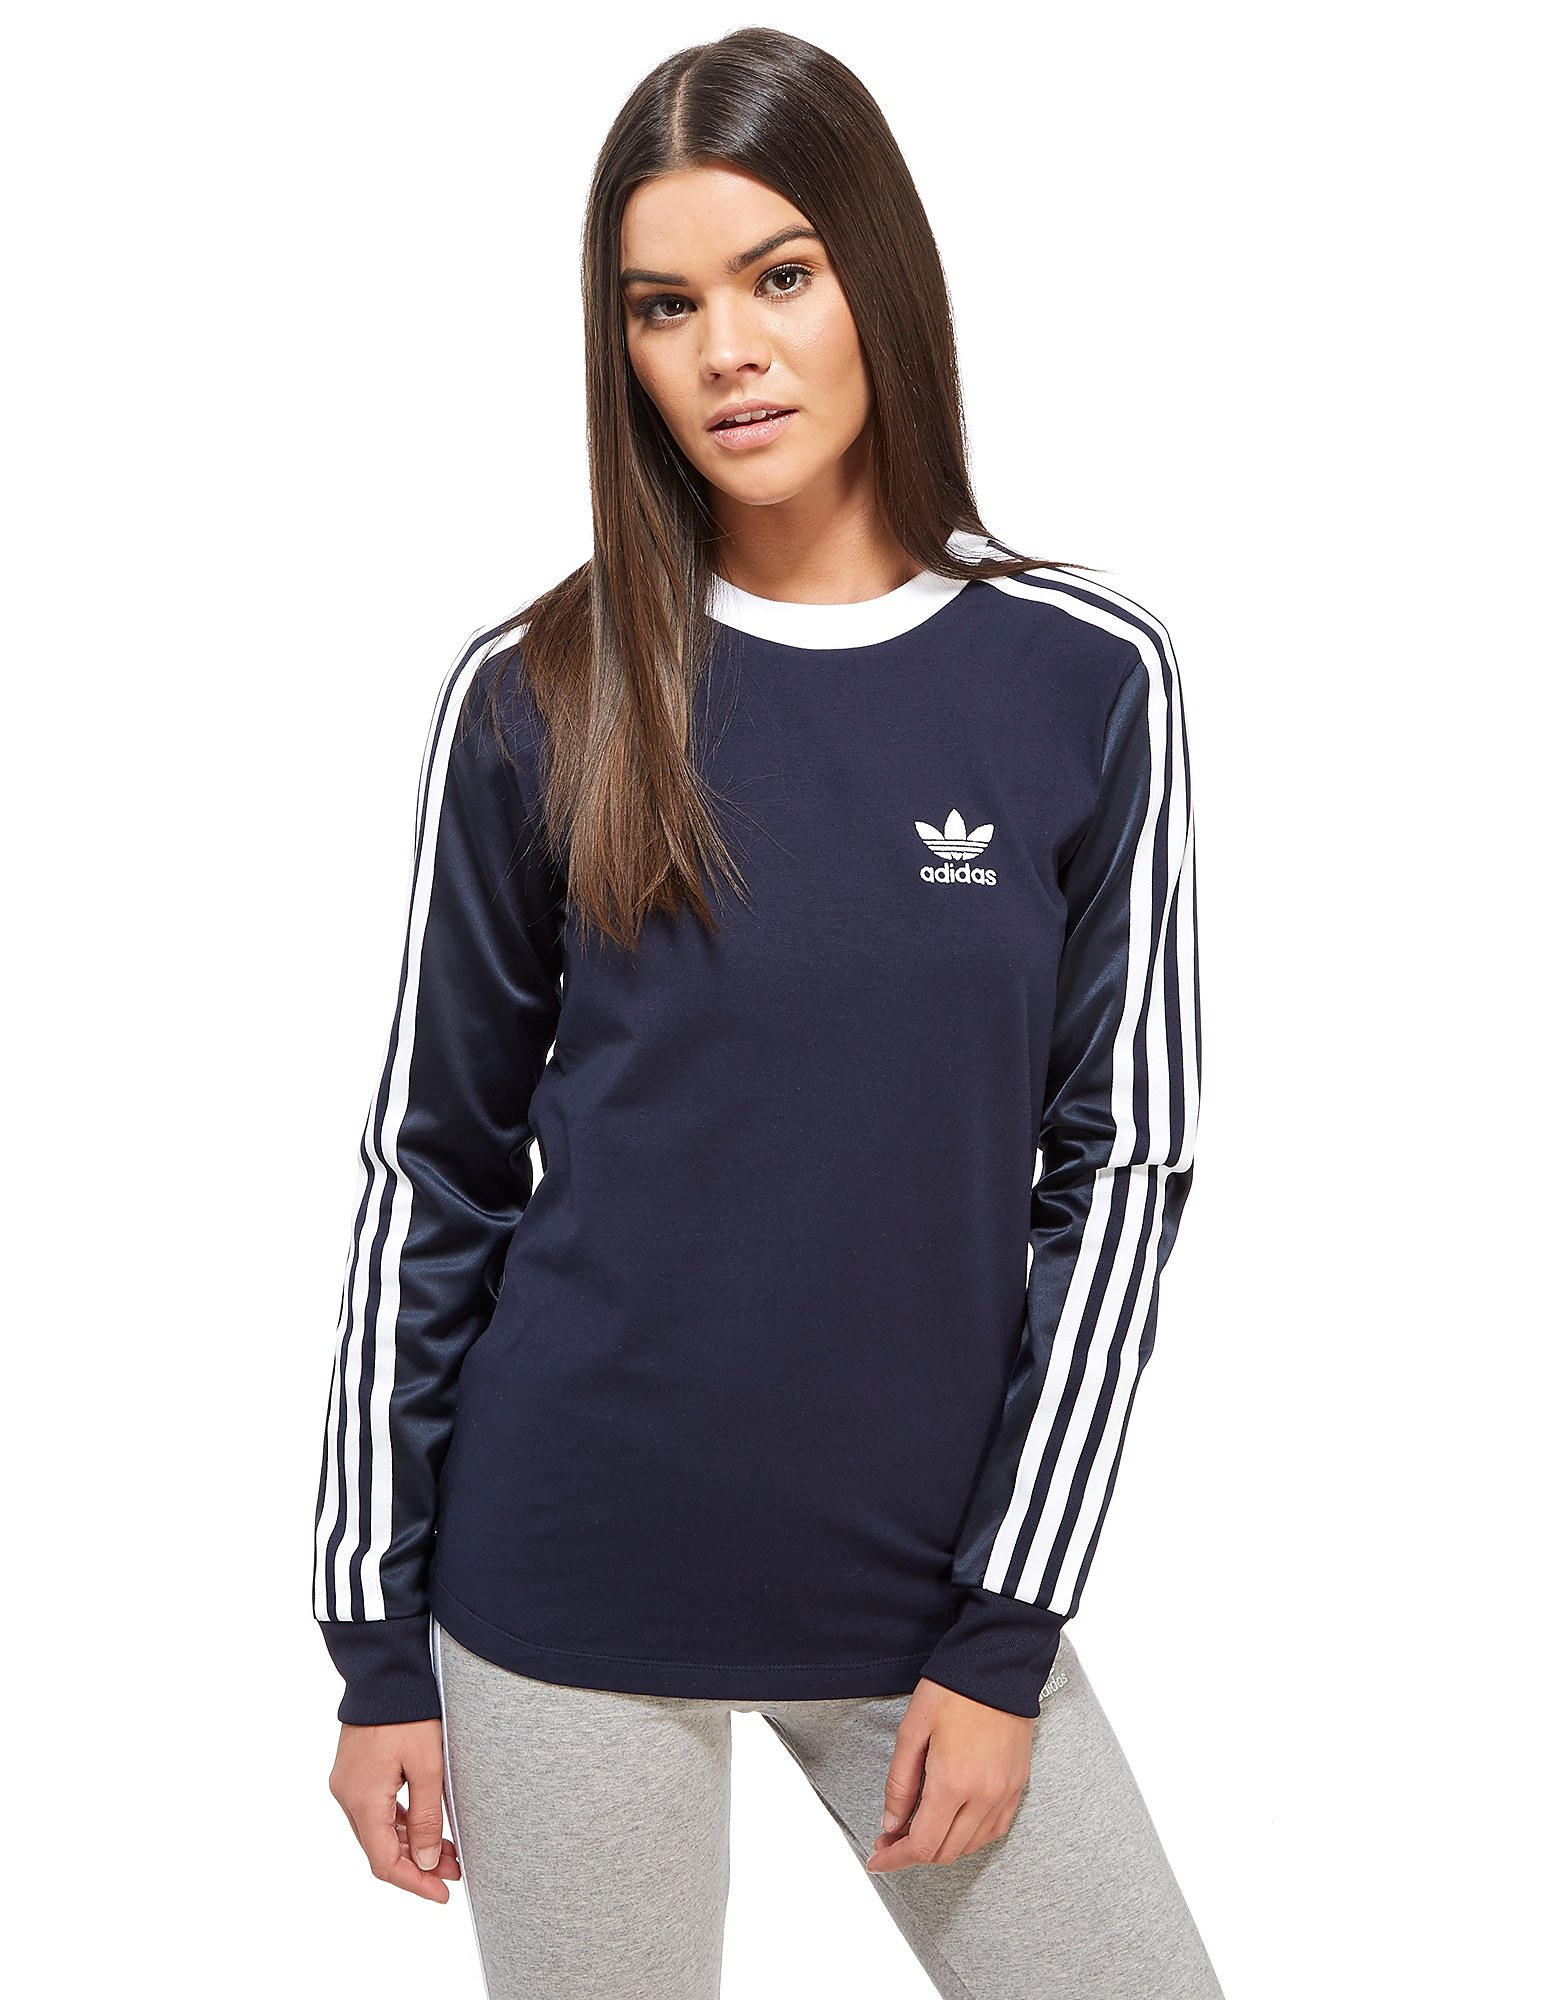 adidas Originals California Long-Sleeved T-Shirt